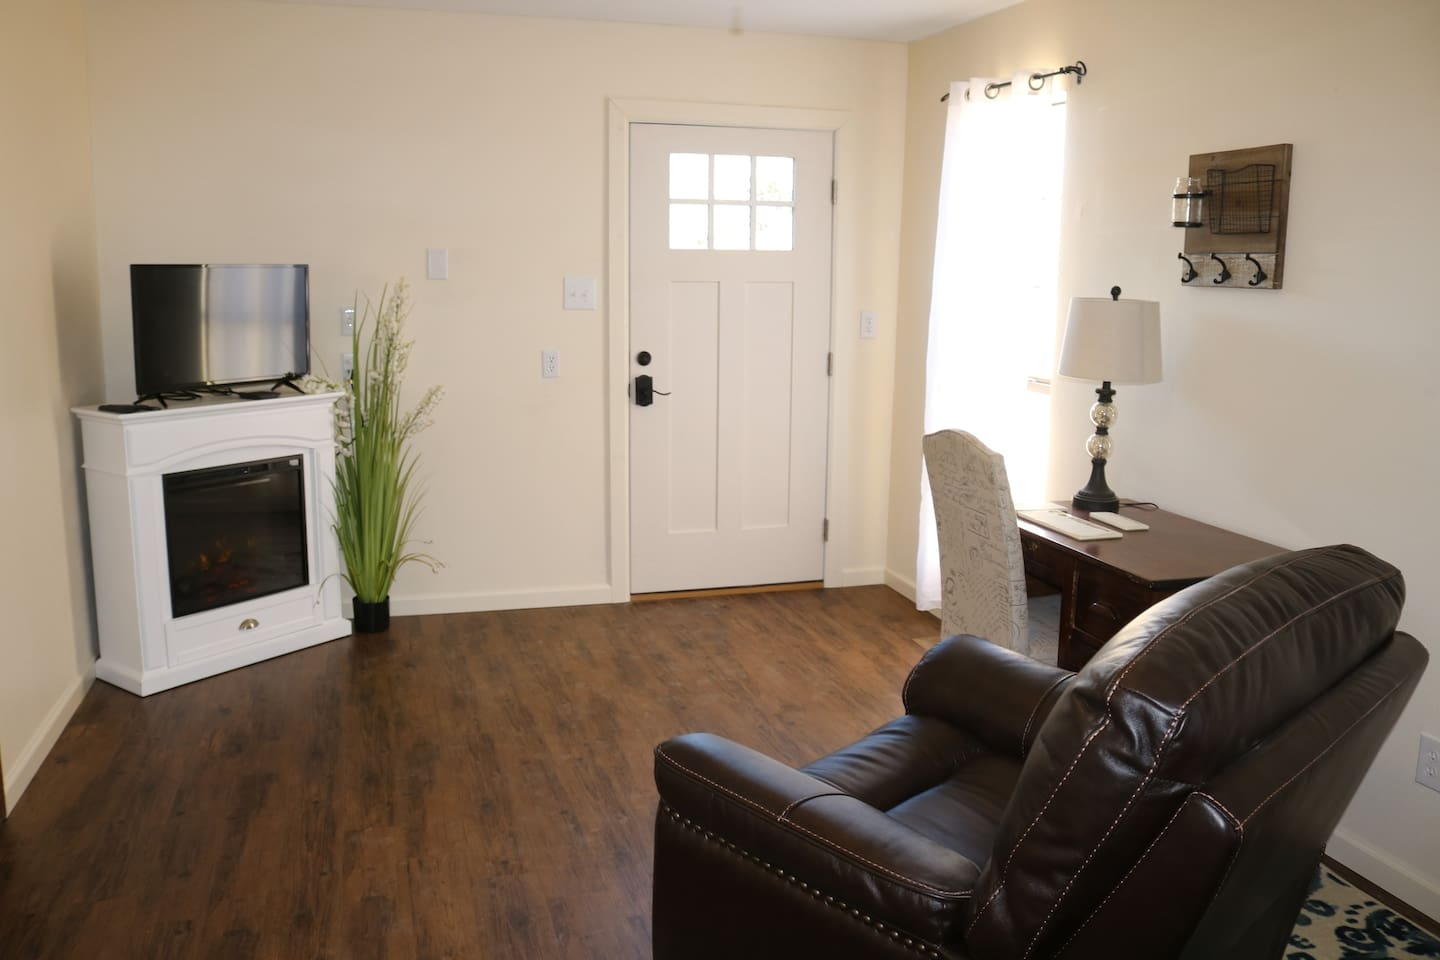 Main area has a electric fireplace, cable television, work desk, oversize recliner.